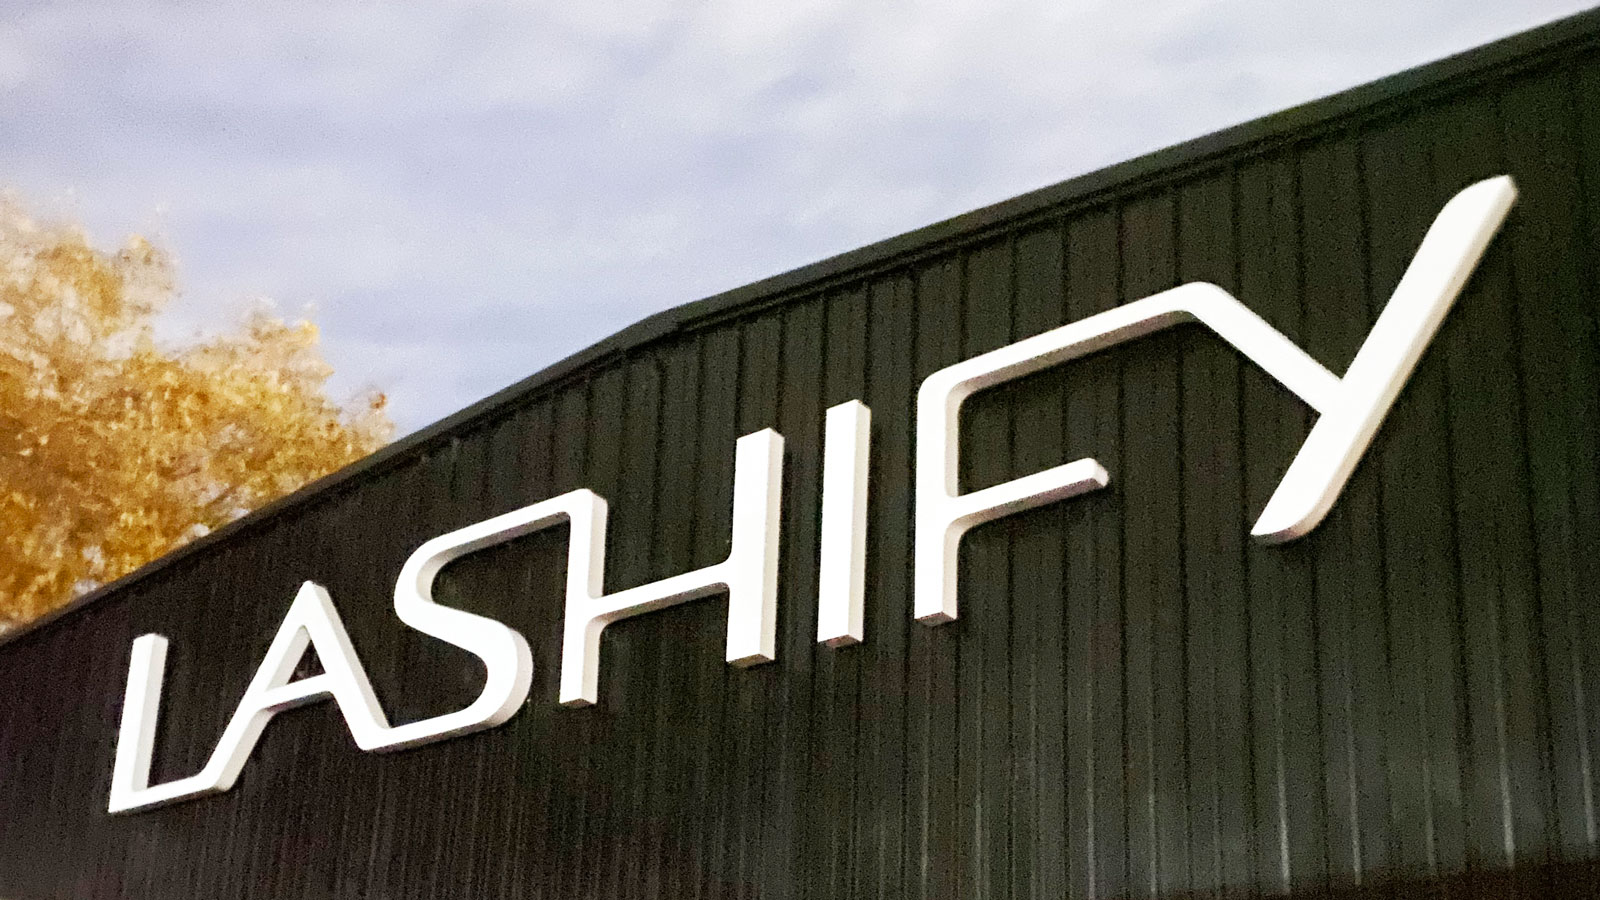 Lashify custom channel letters with LED lights